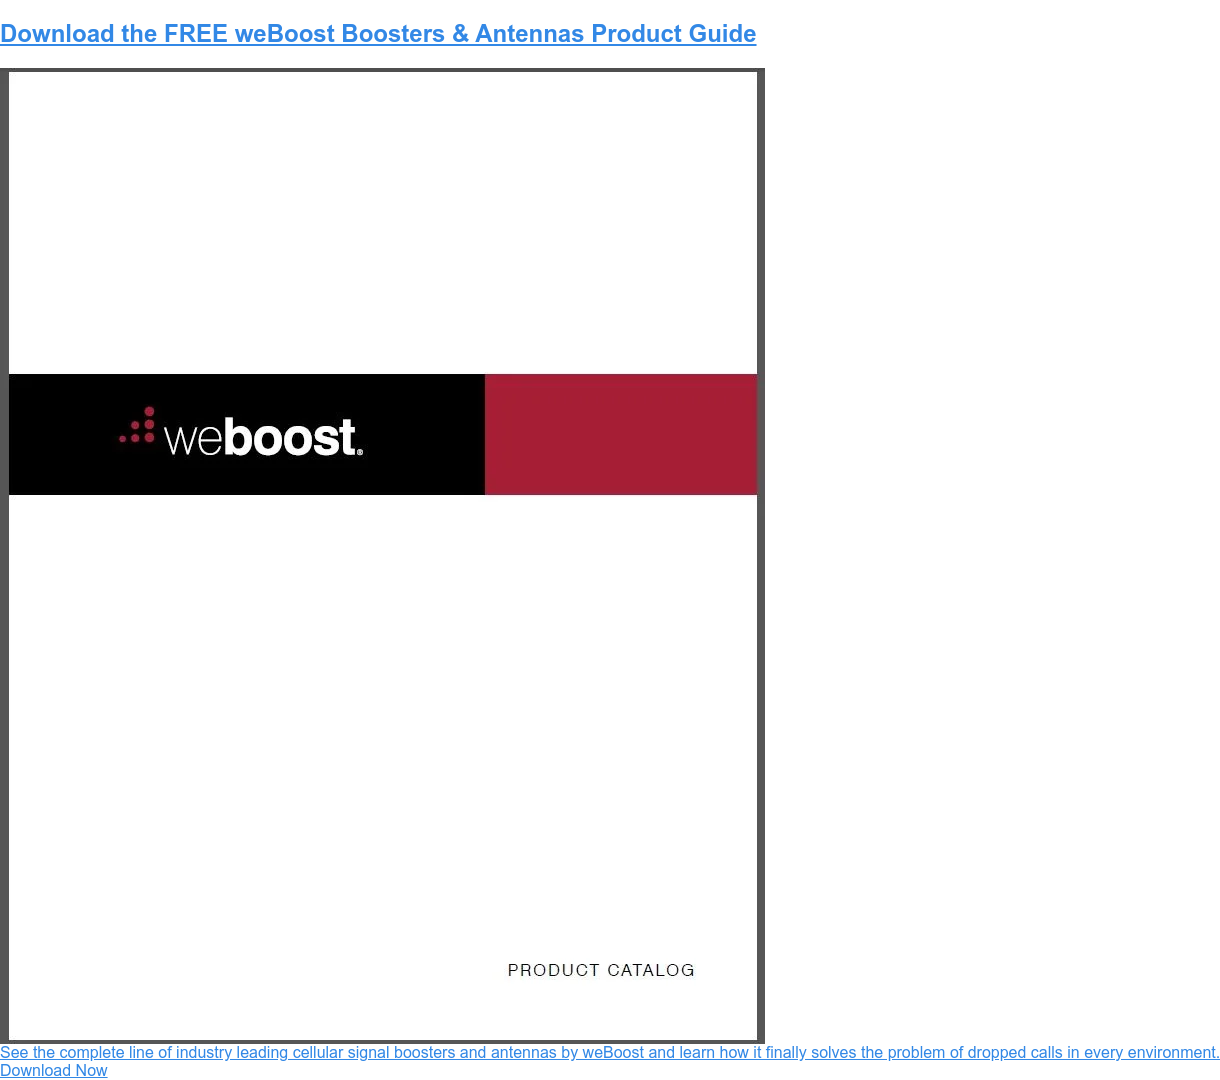 Download the FREE weBoost Boosters & Antennas Product Guide See the complete line of industry leading cellular signal boosters and antennas by weBoost and learn how it finally solves the problem of dropped calls in every environment. Download Now